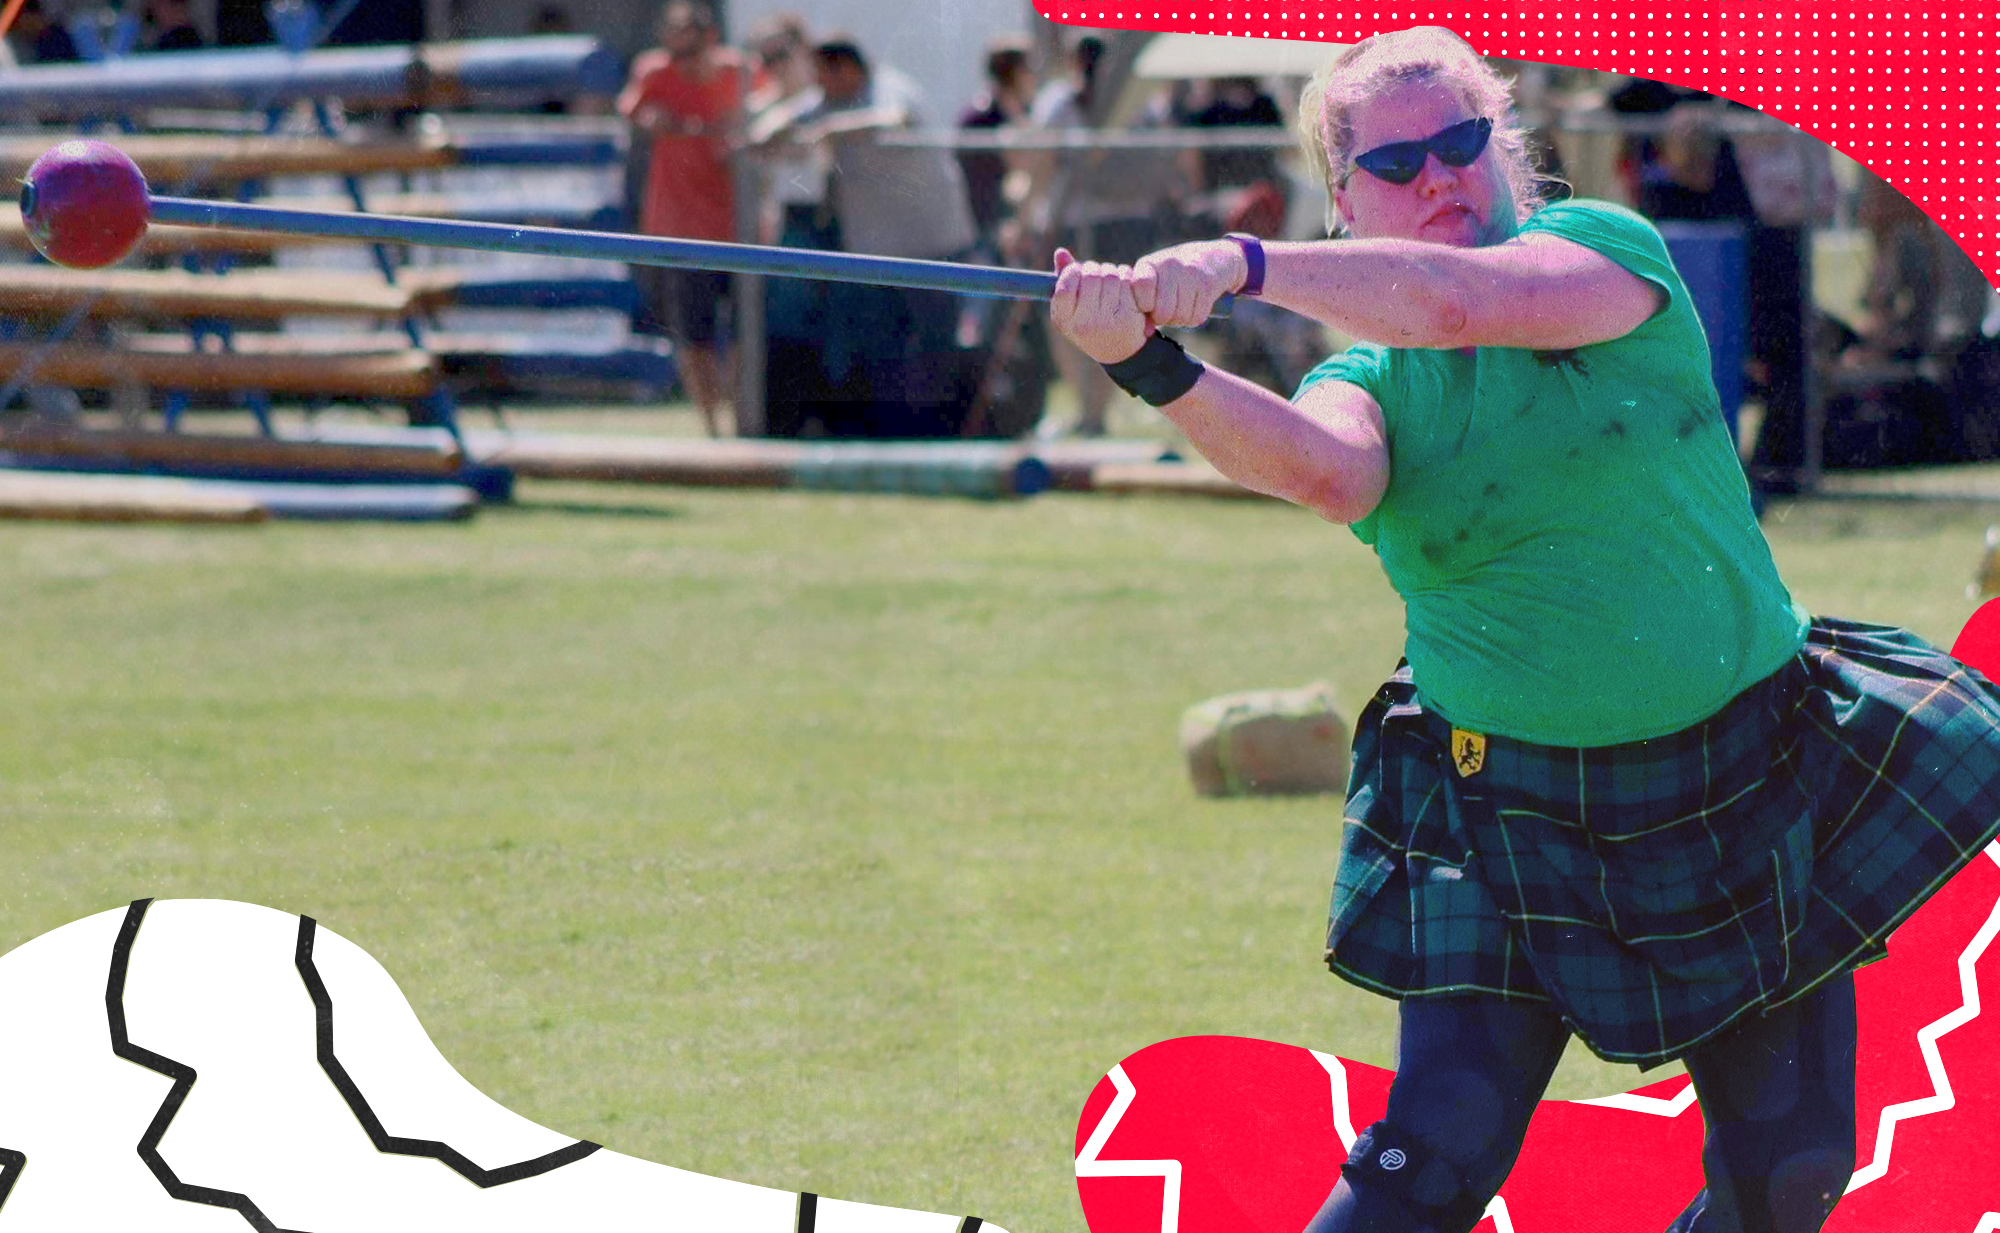 """Highland games competitor in a green t-shirt and kilt swinging a """"hammer"""" as part of the hammer throw event."""